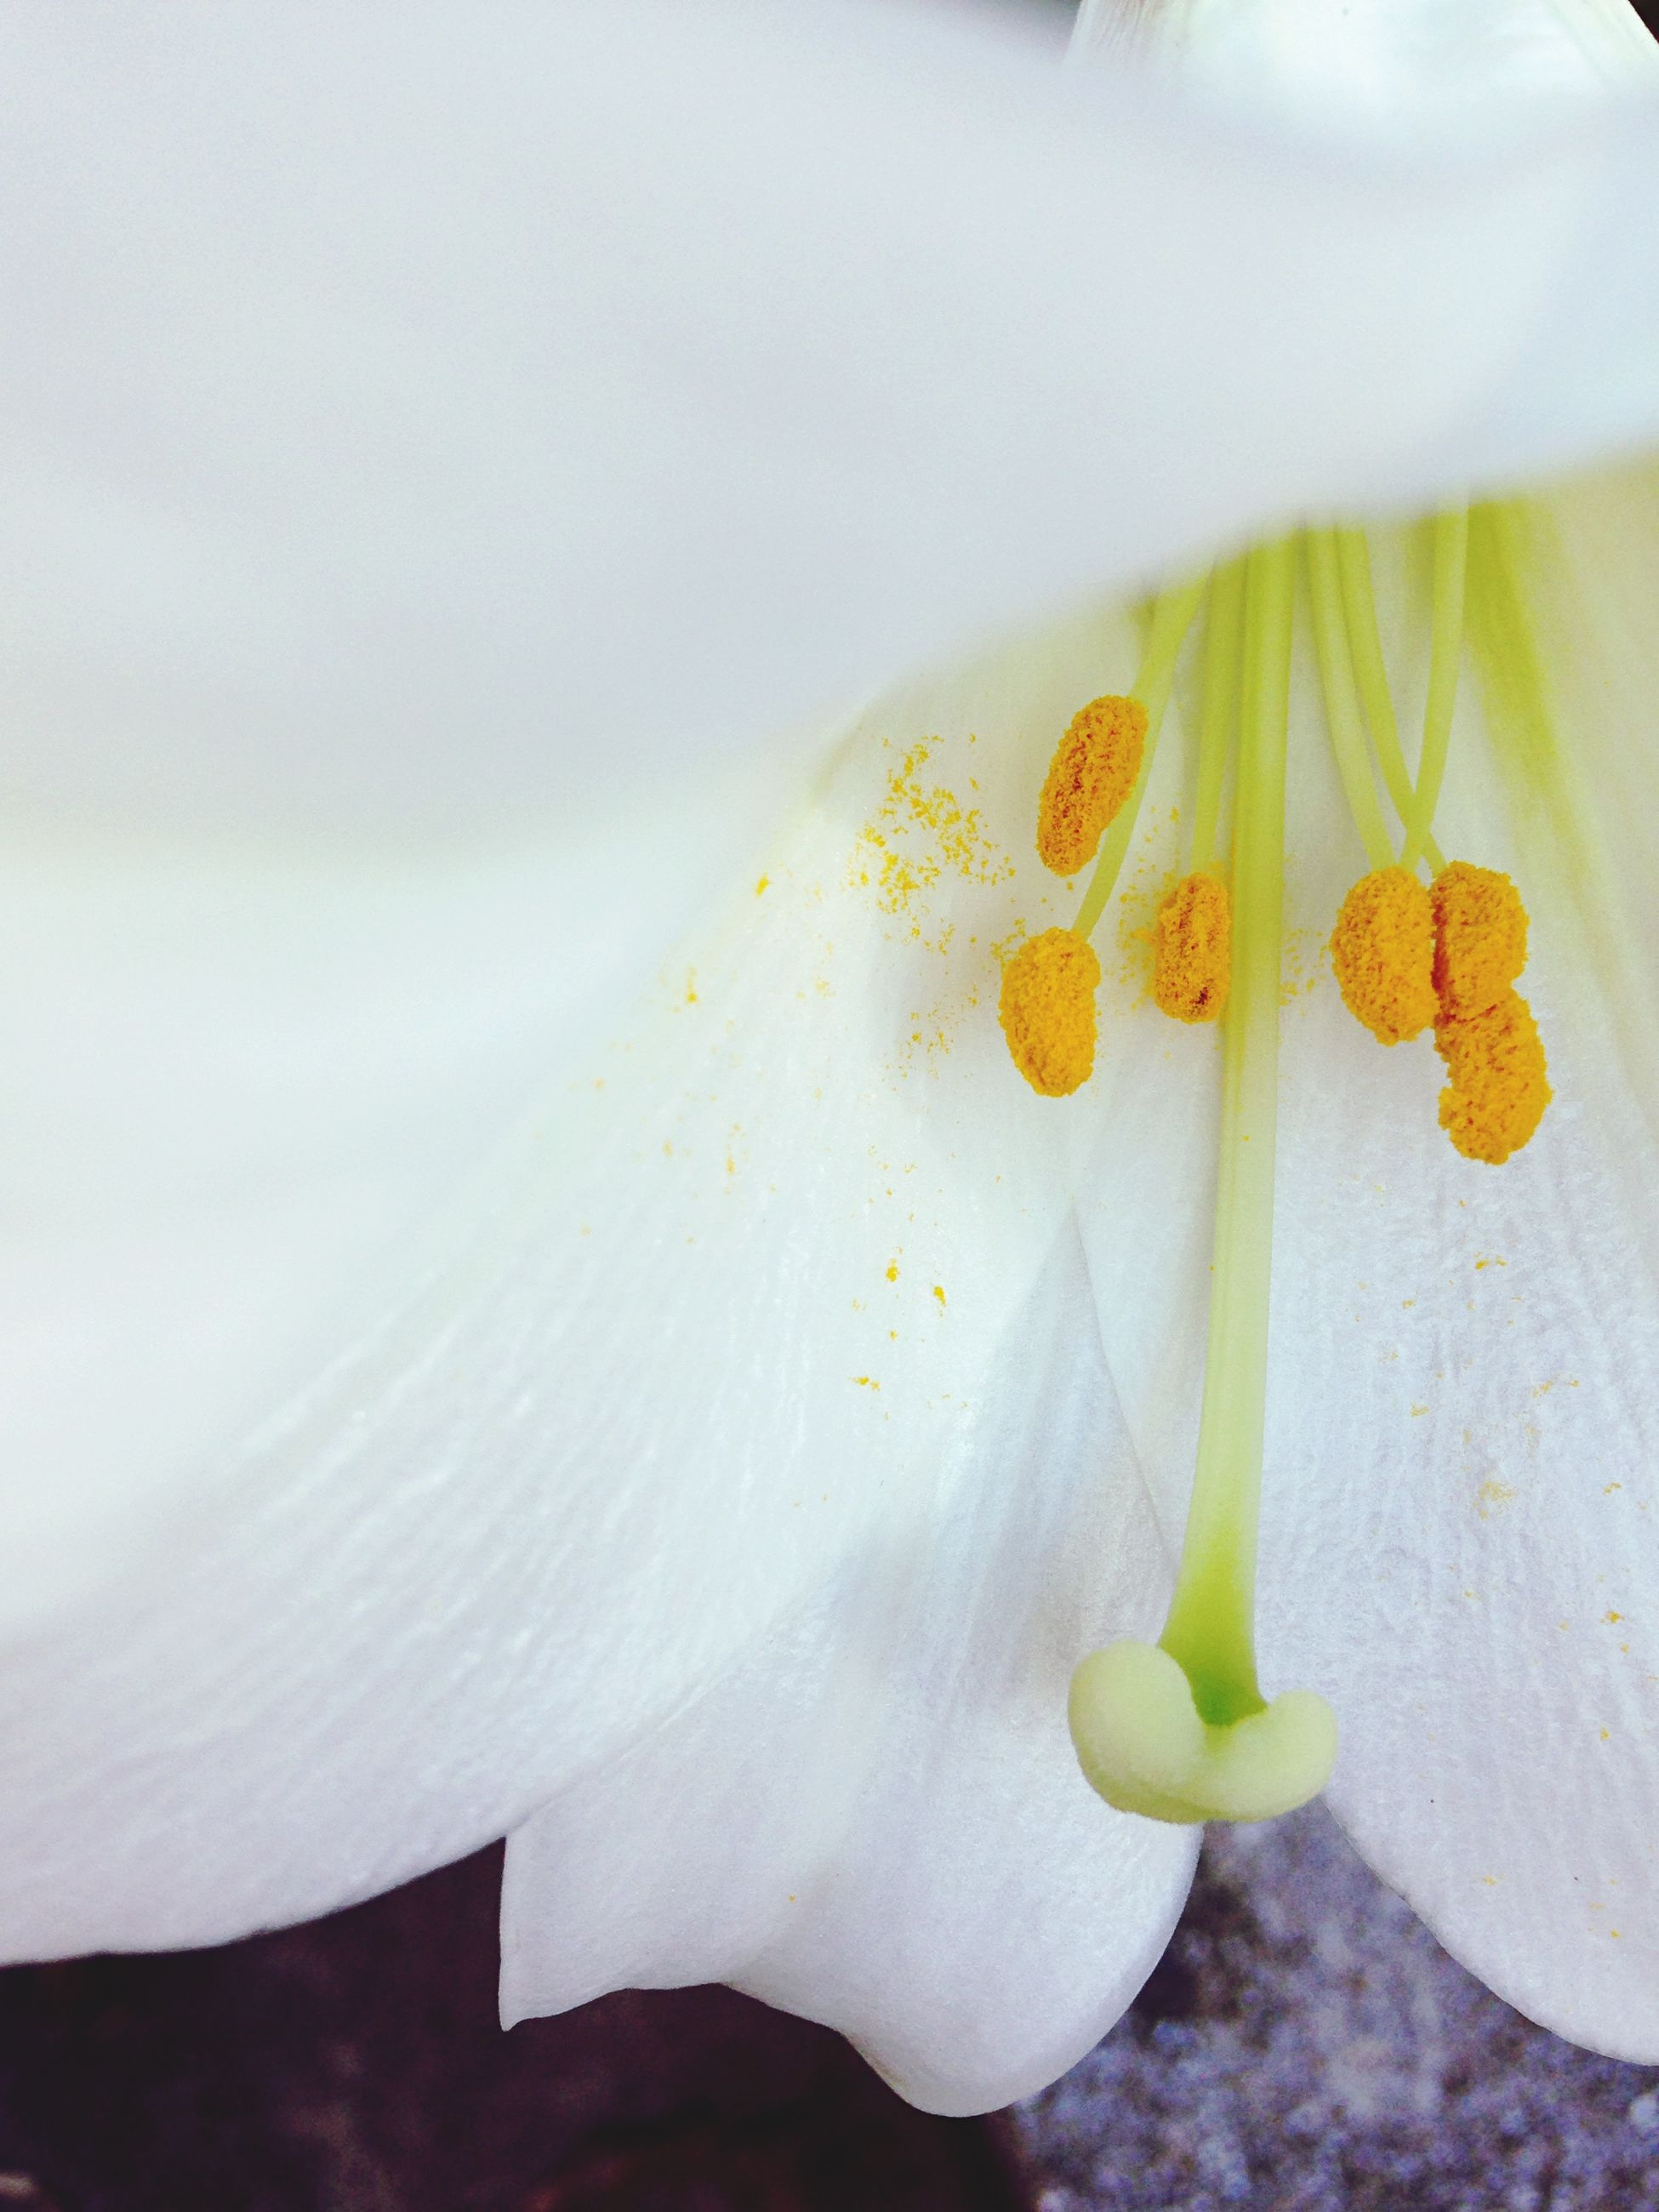 flower, petal, freshness, flower head, fragility, white color, beauty in nature, close-up, growth, nature, single flower, blooming, stamen, pollen, plant, white, yellow, focus on foreground, in bloom, blossom